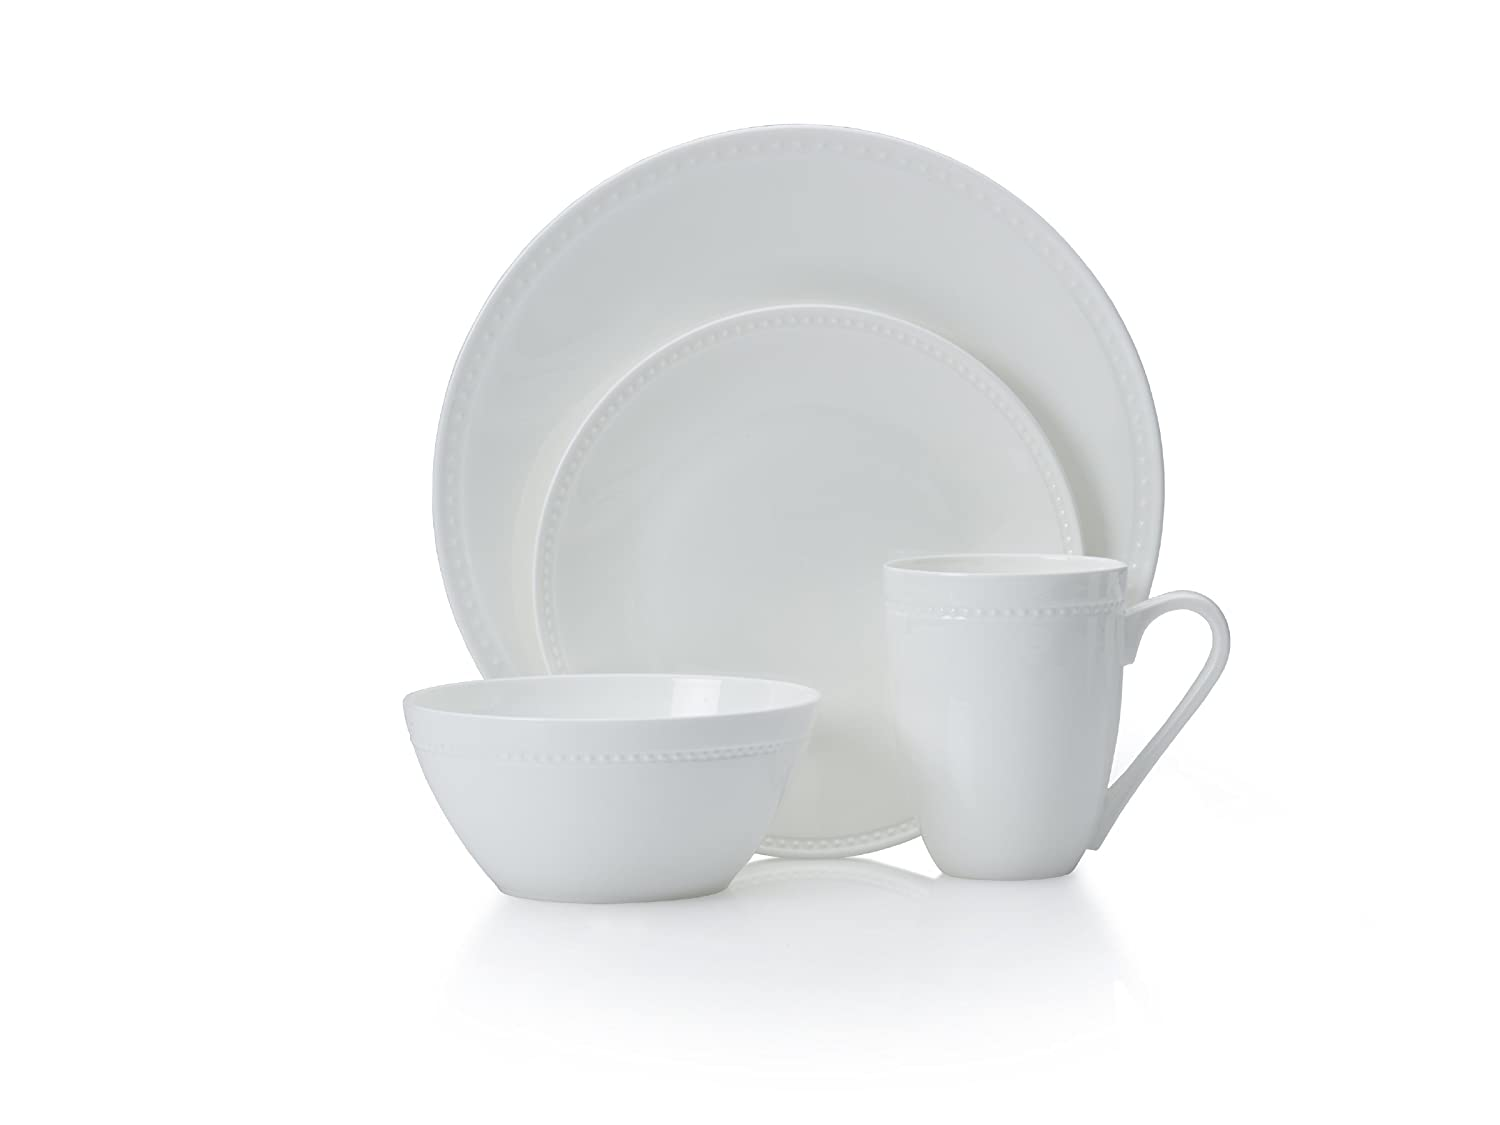 Mikasa 5224192 Loria 16-Piece Bone China Dinnerware Set - Dishwasher & Microwave Safe, Service for 4, White